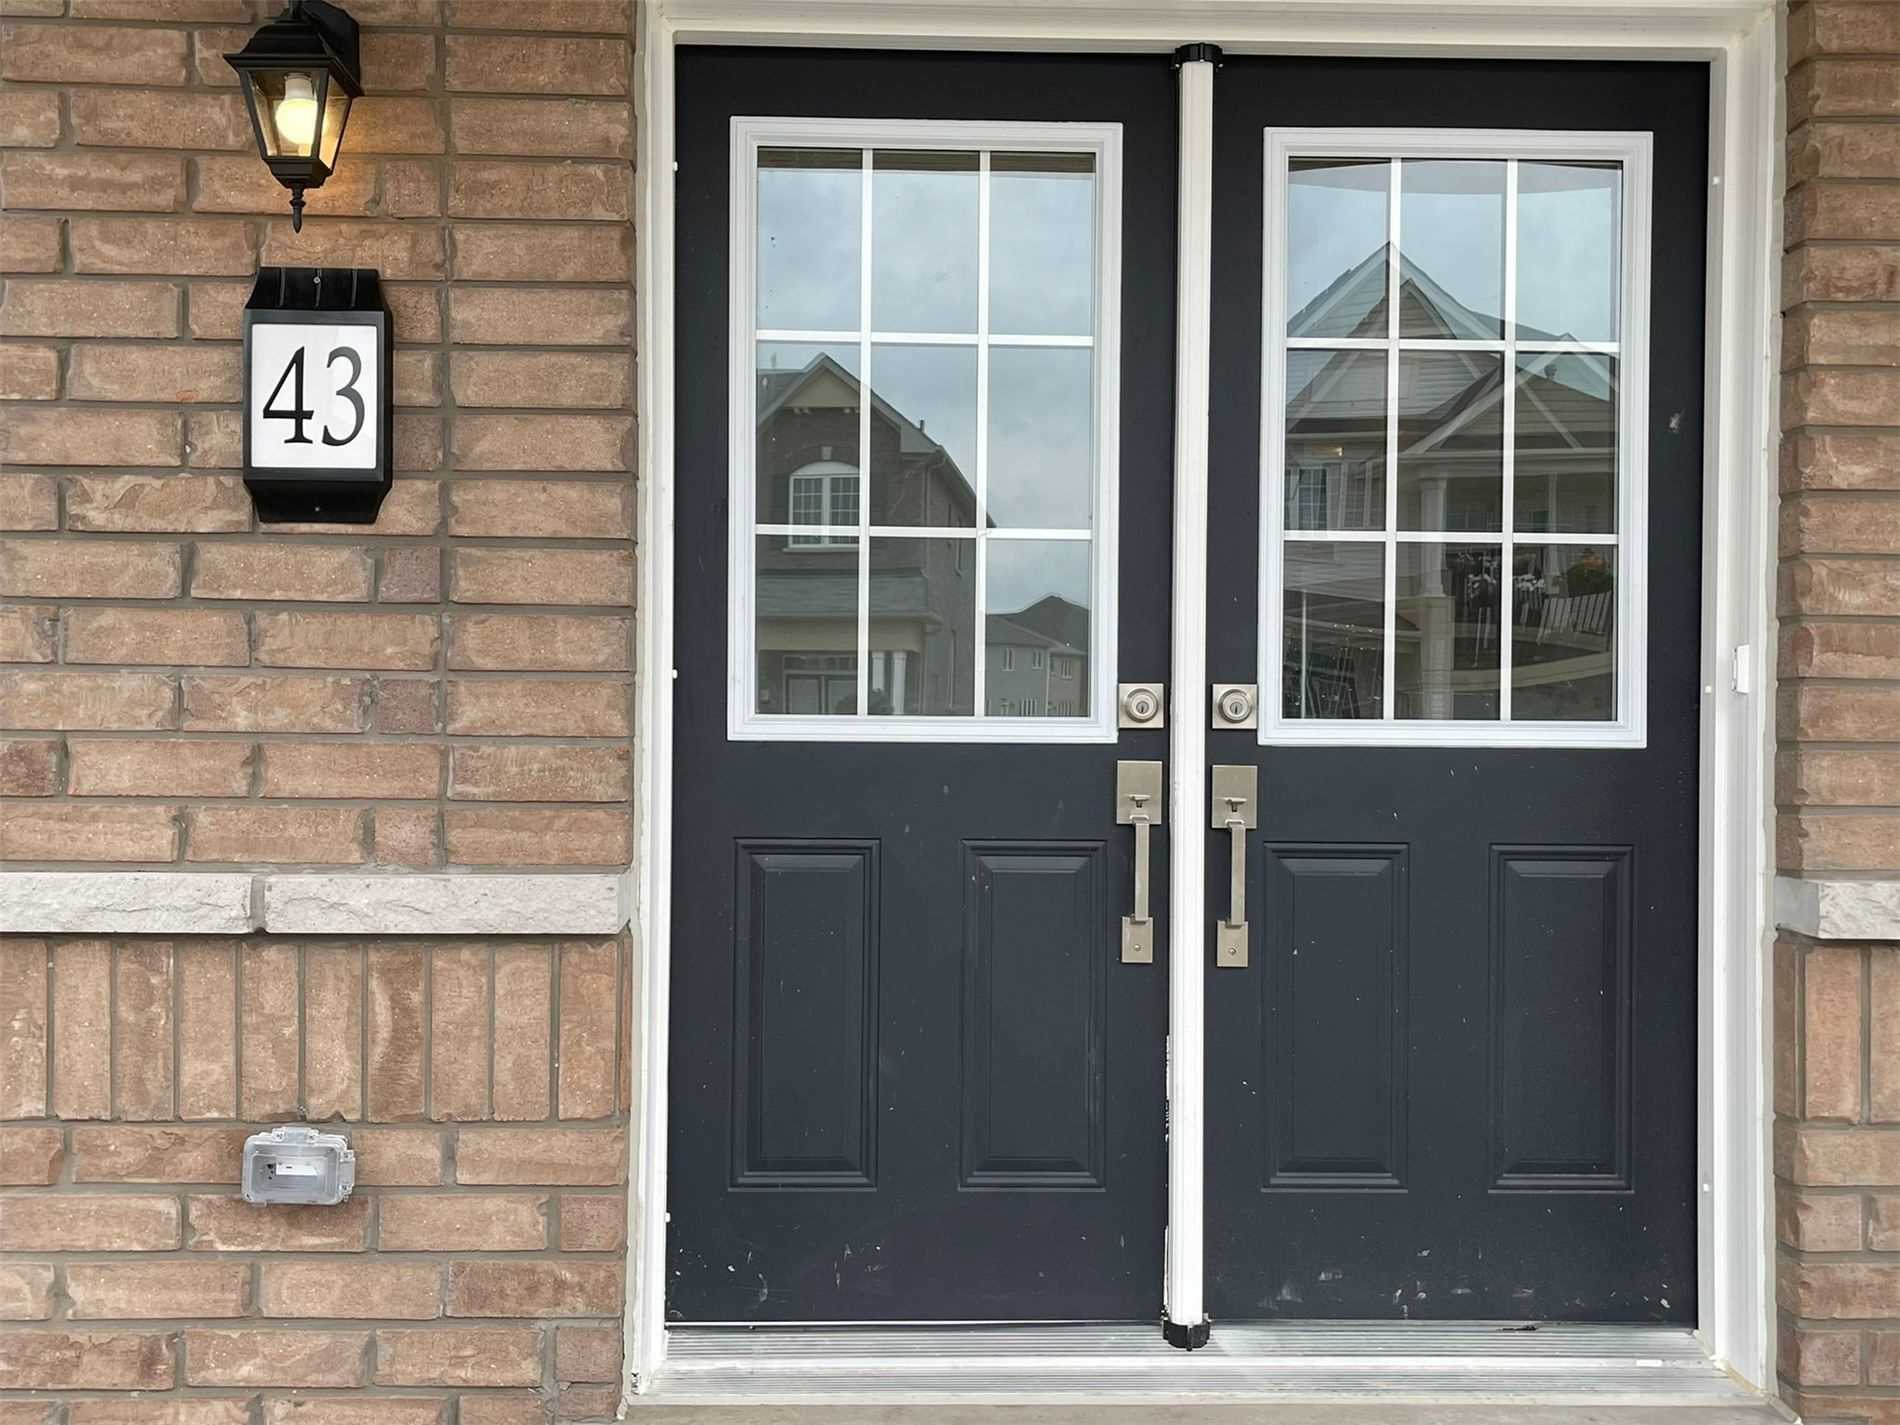 pictures of 43 Anderson Rd, Brant N3T0S2